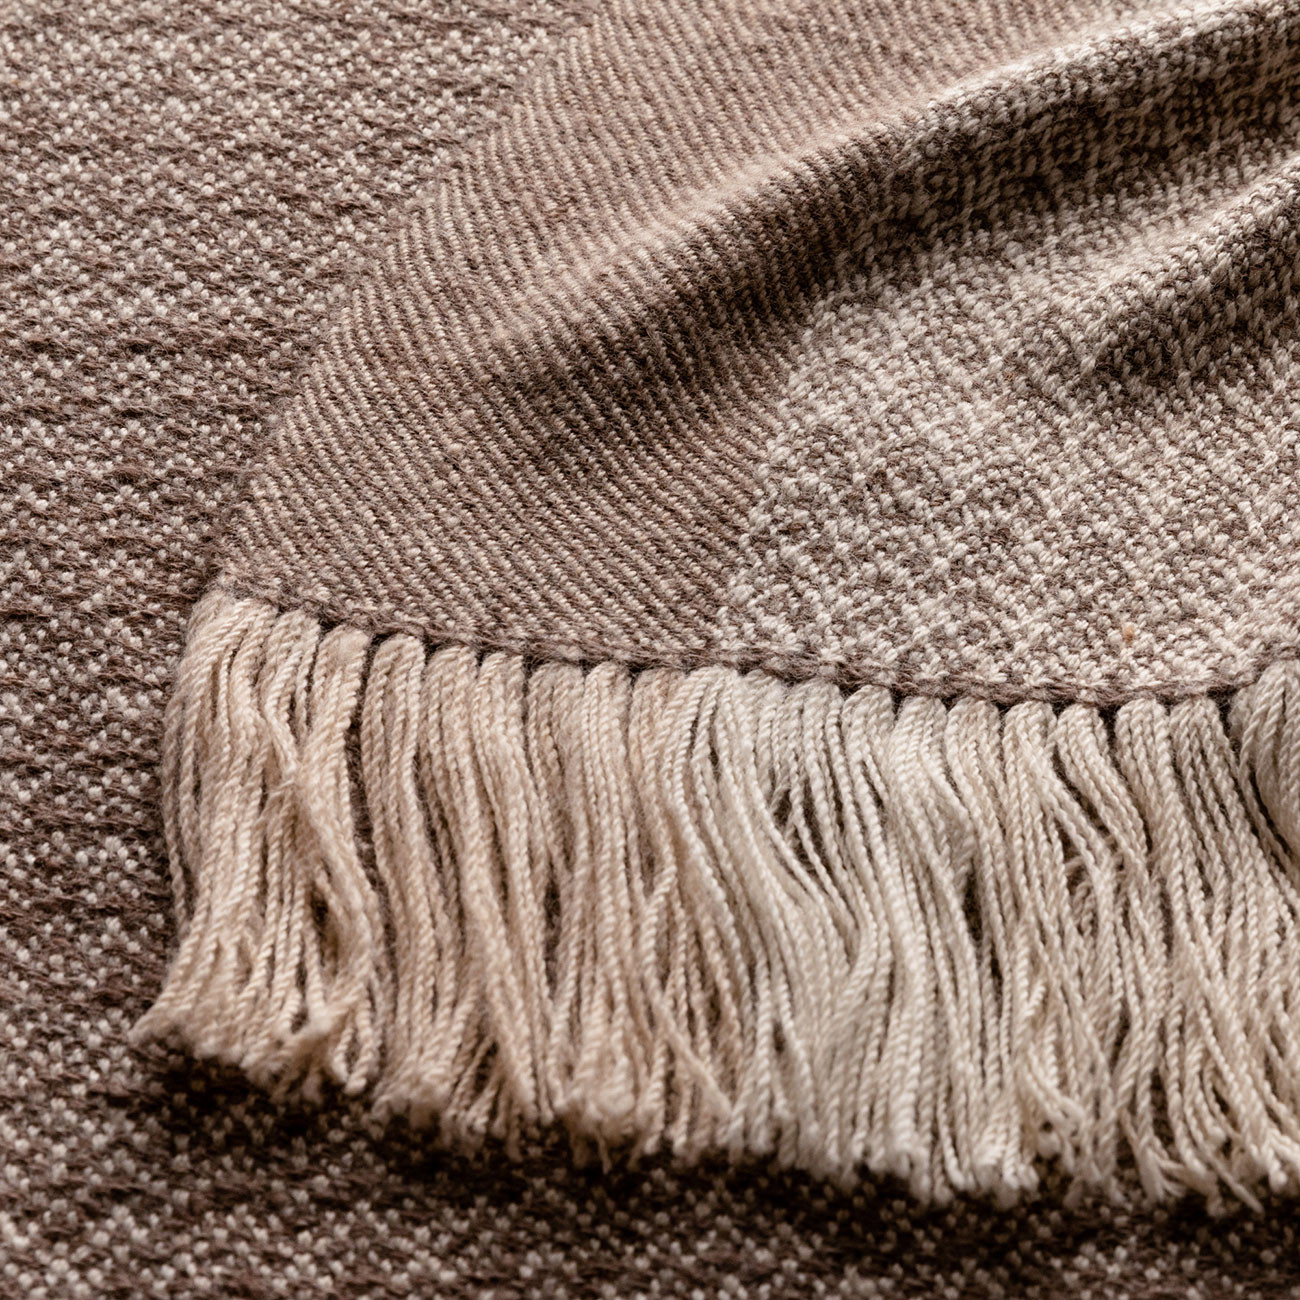 Handwoven Pinecone Throw - Silver Brown, Cream and White Alpaca - 3